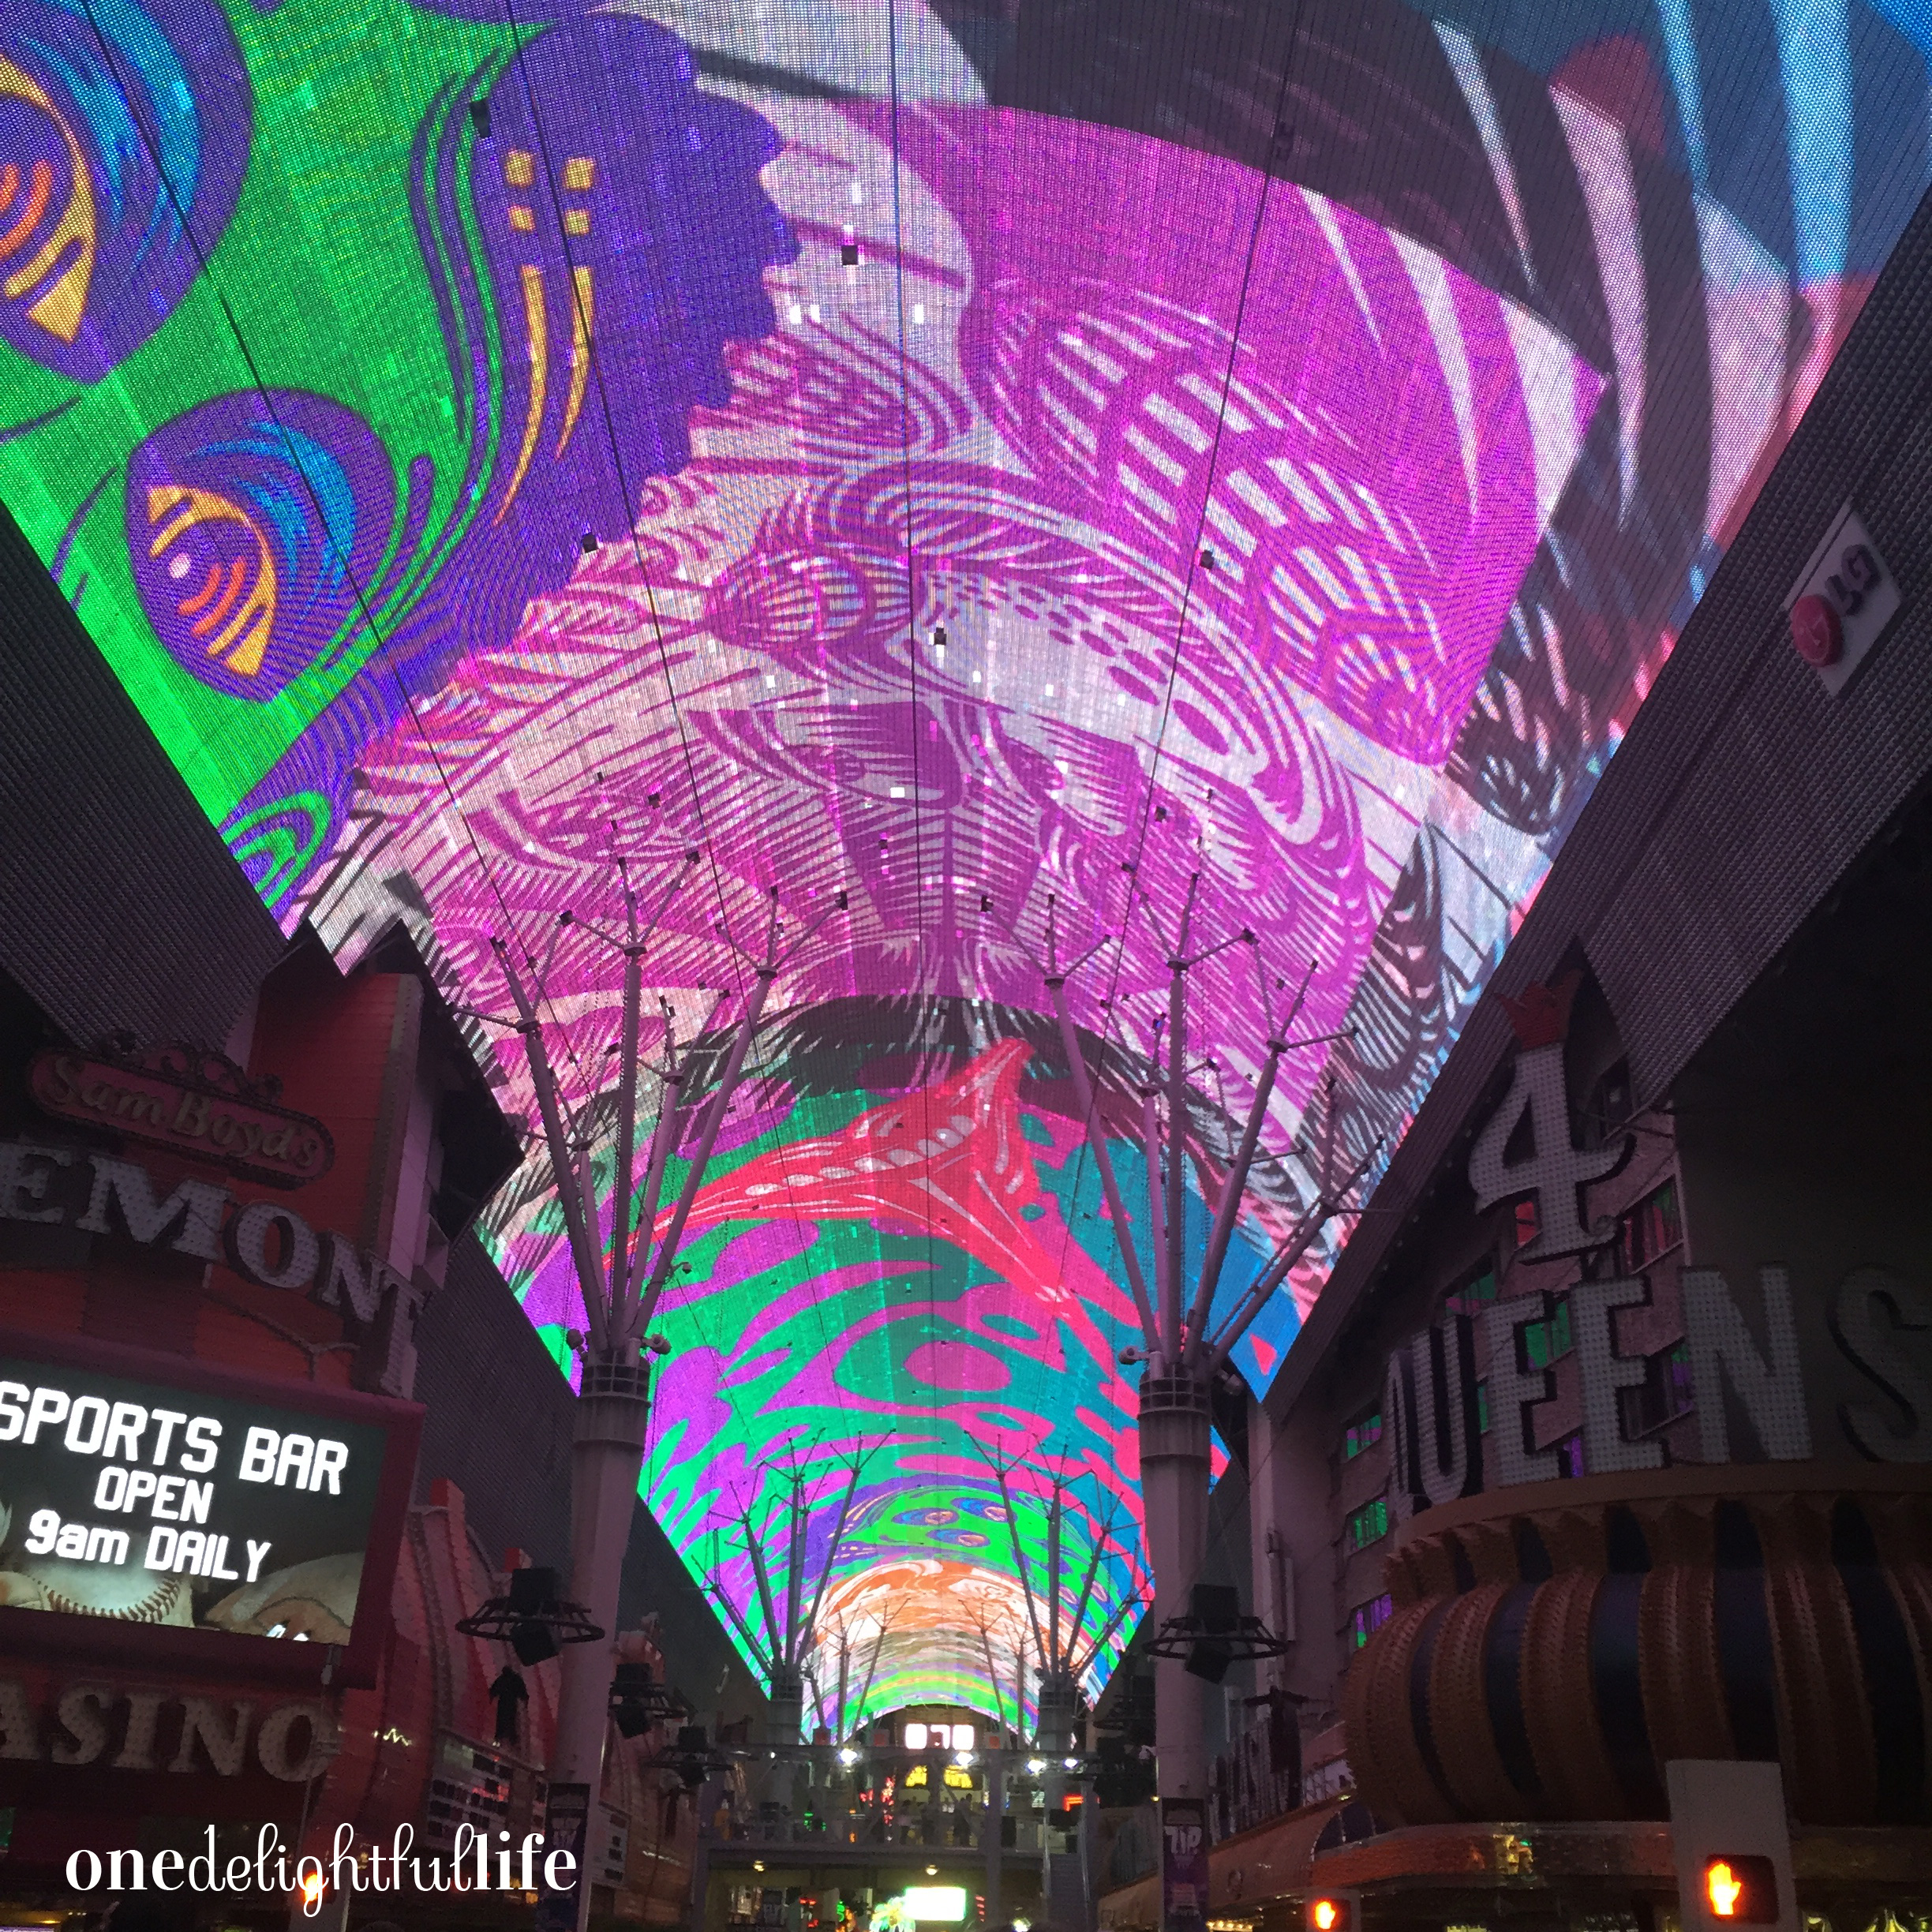 The mega LED screen over Fremont street plays a music video show every hour on the hour.